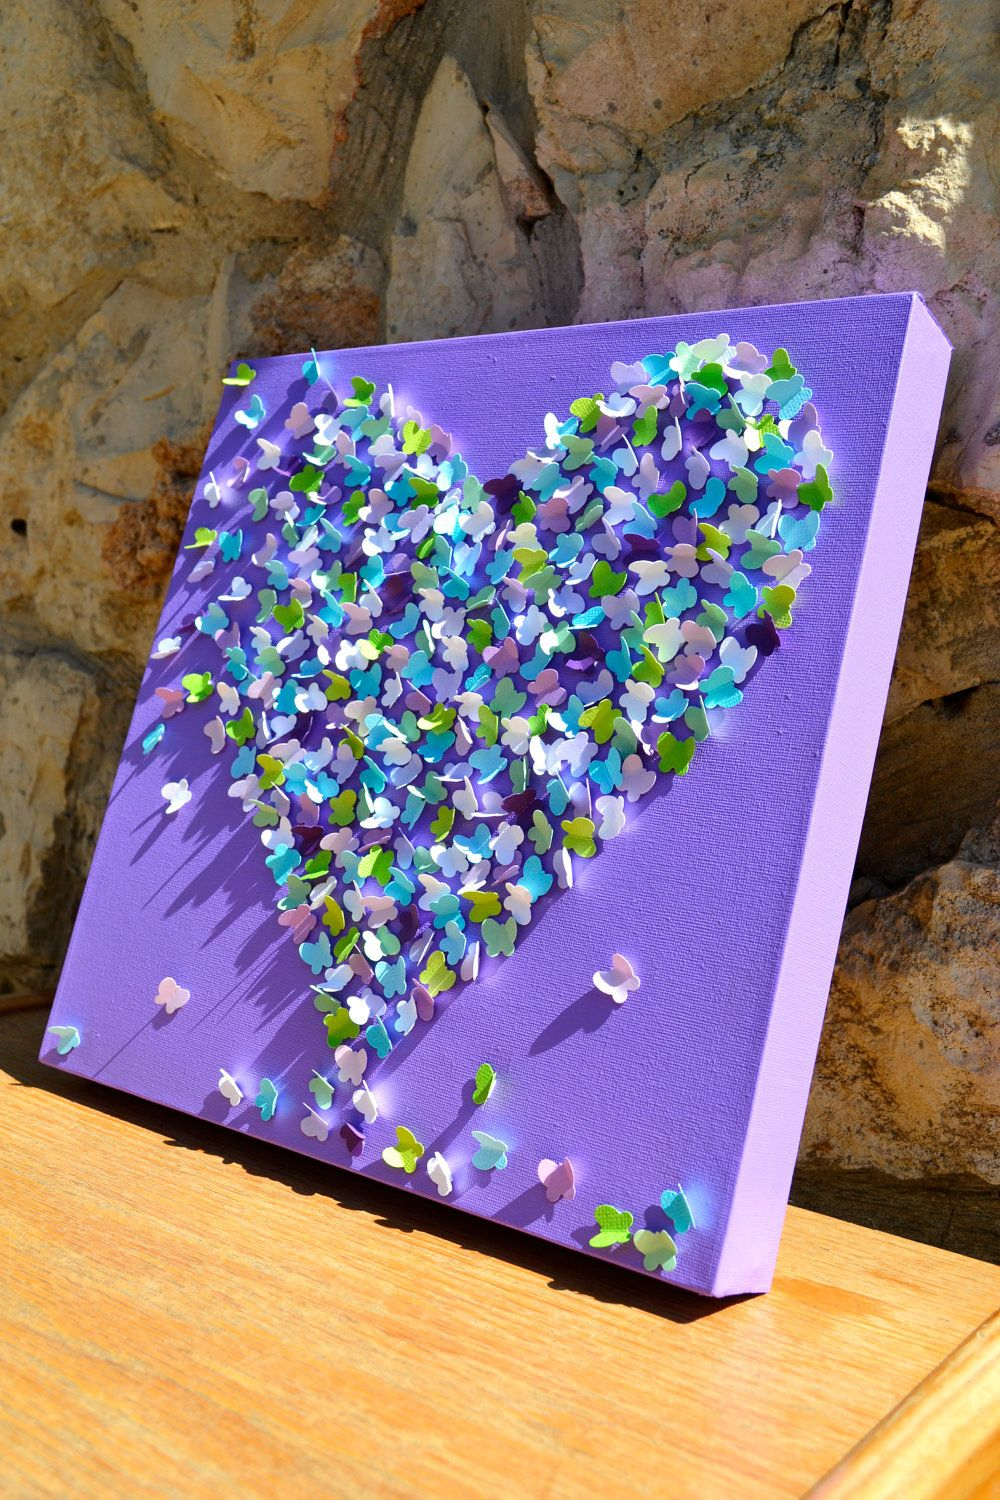 3d Create Your Own Room: 3D Butterfly Wall Art At Etsy - Diy It!!!